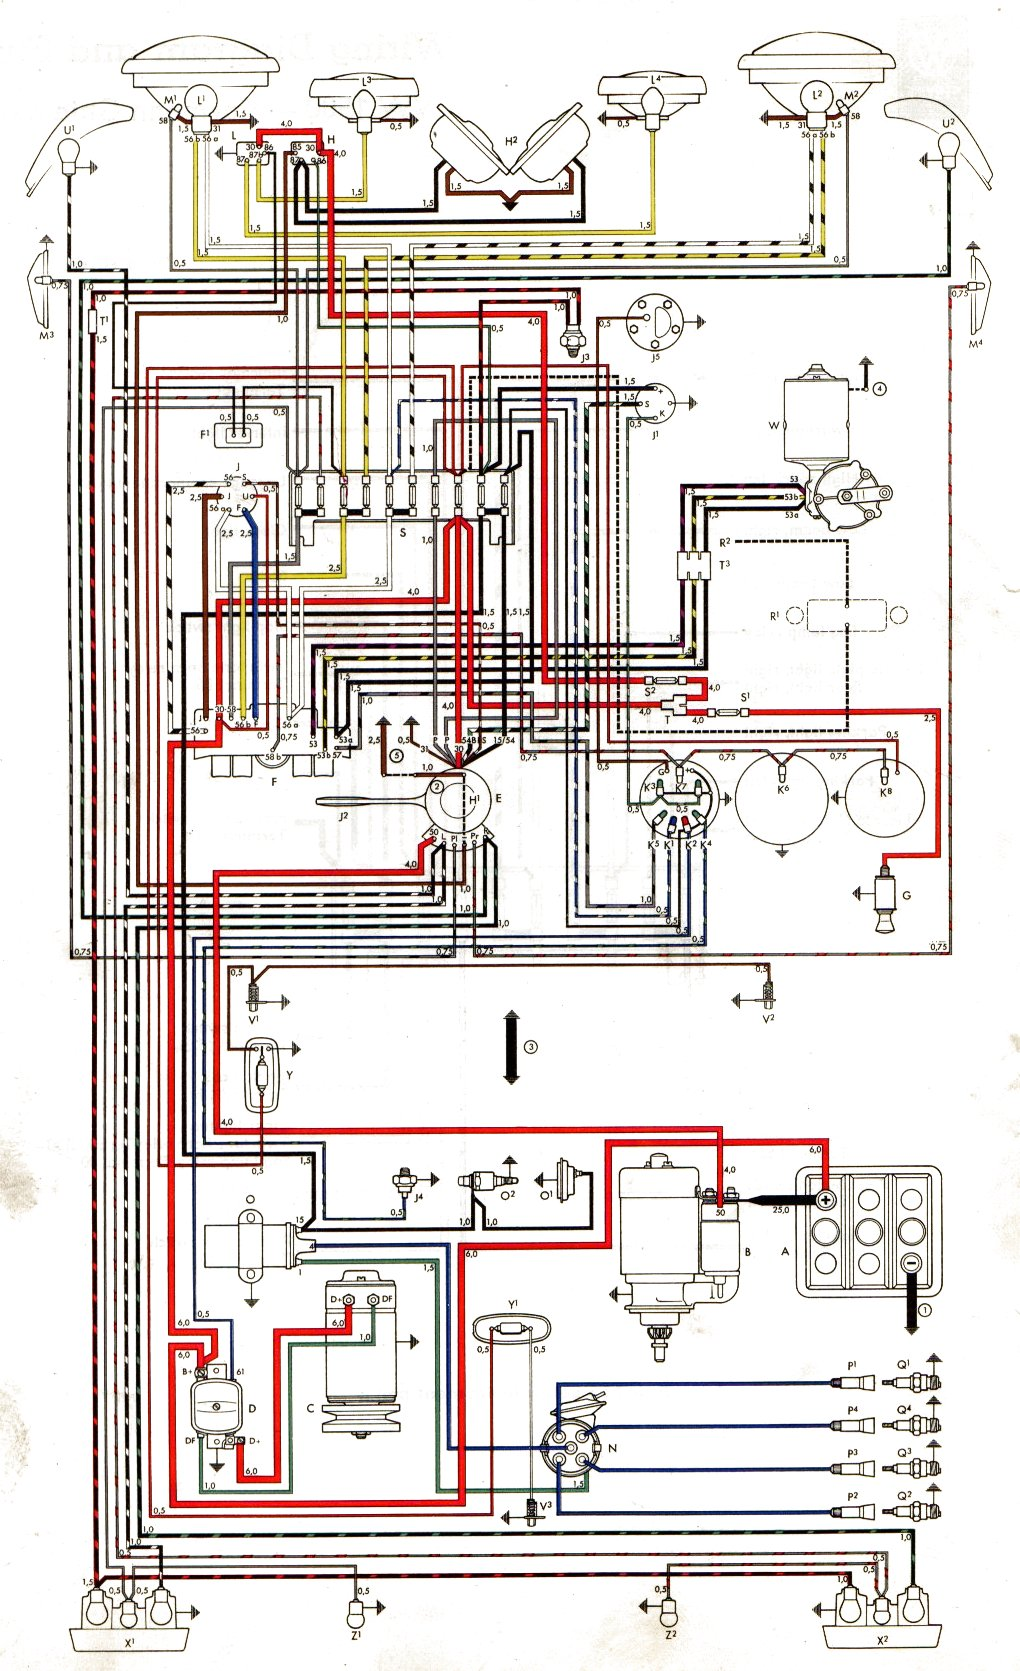 vwvortex com 62 karmannghia horn not workign vw wiring harness diagram